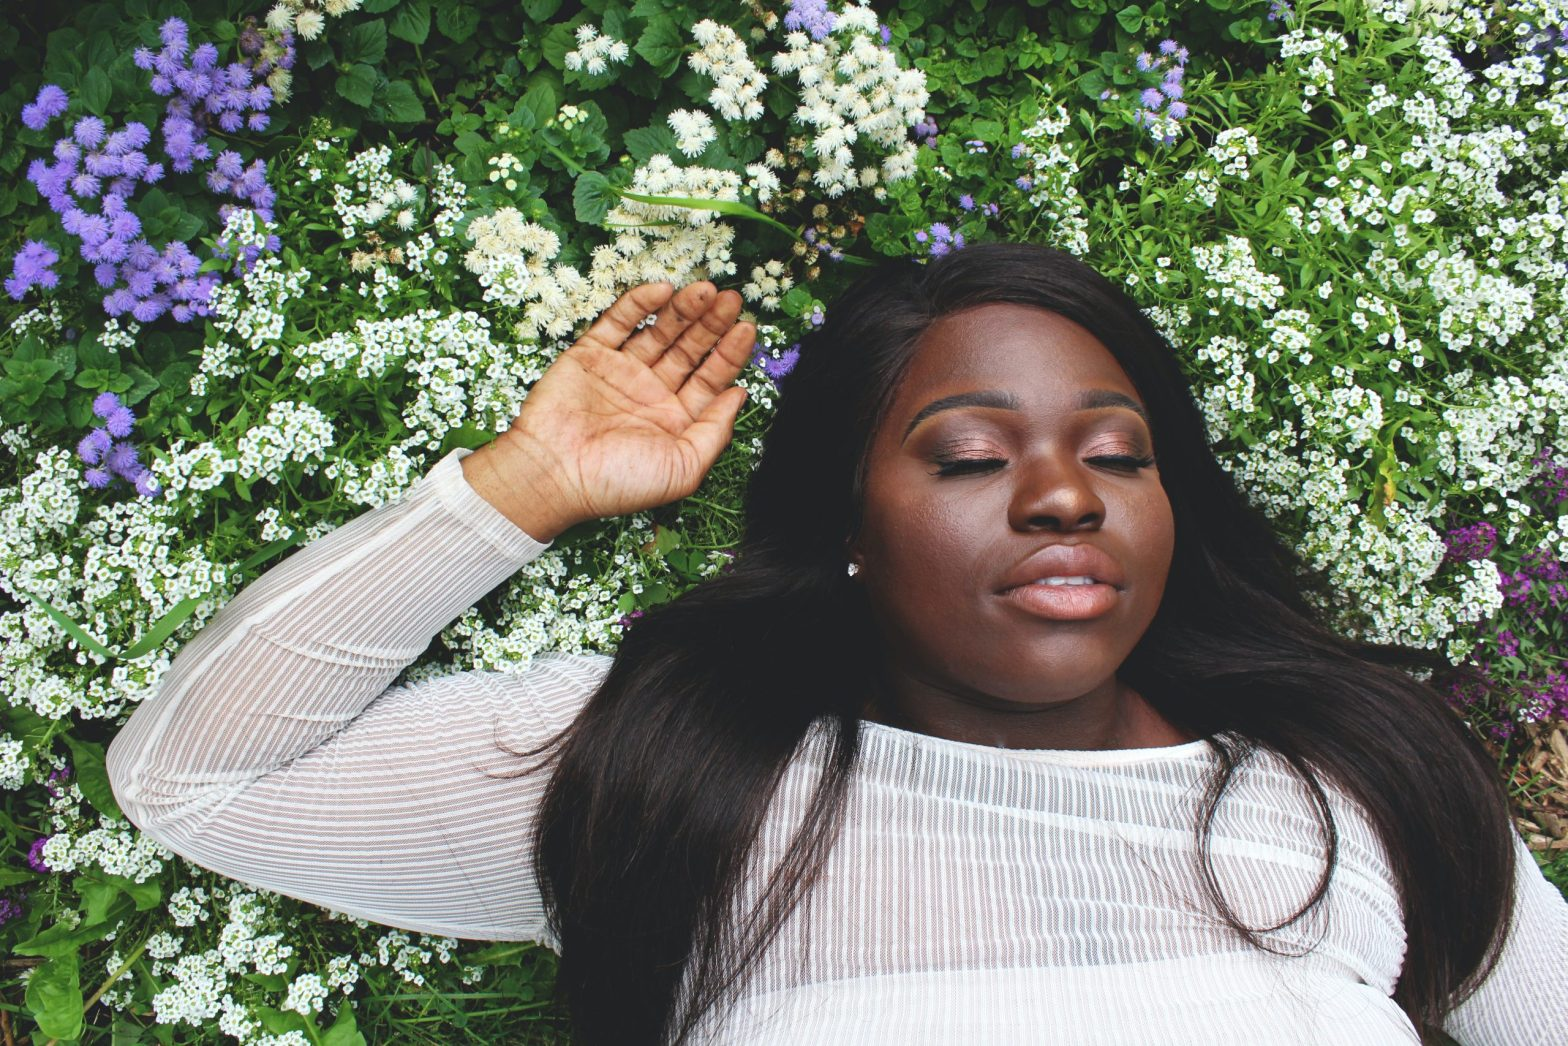 black woman lying in a bed of flowers